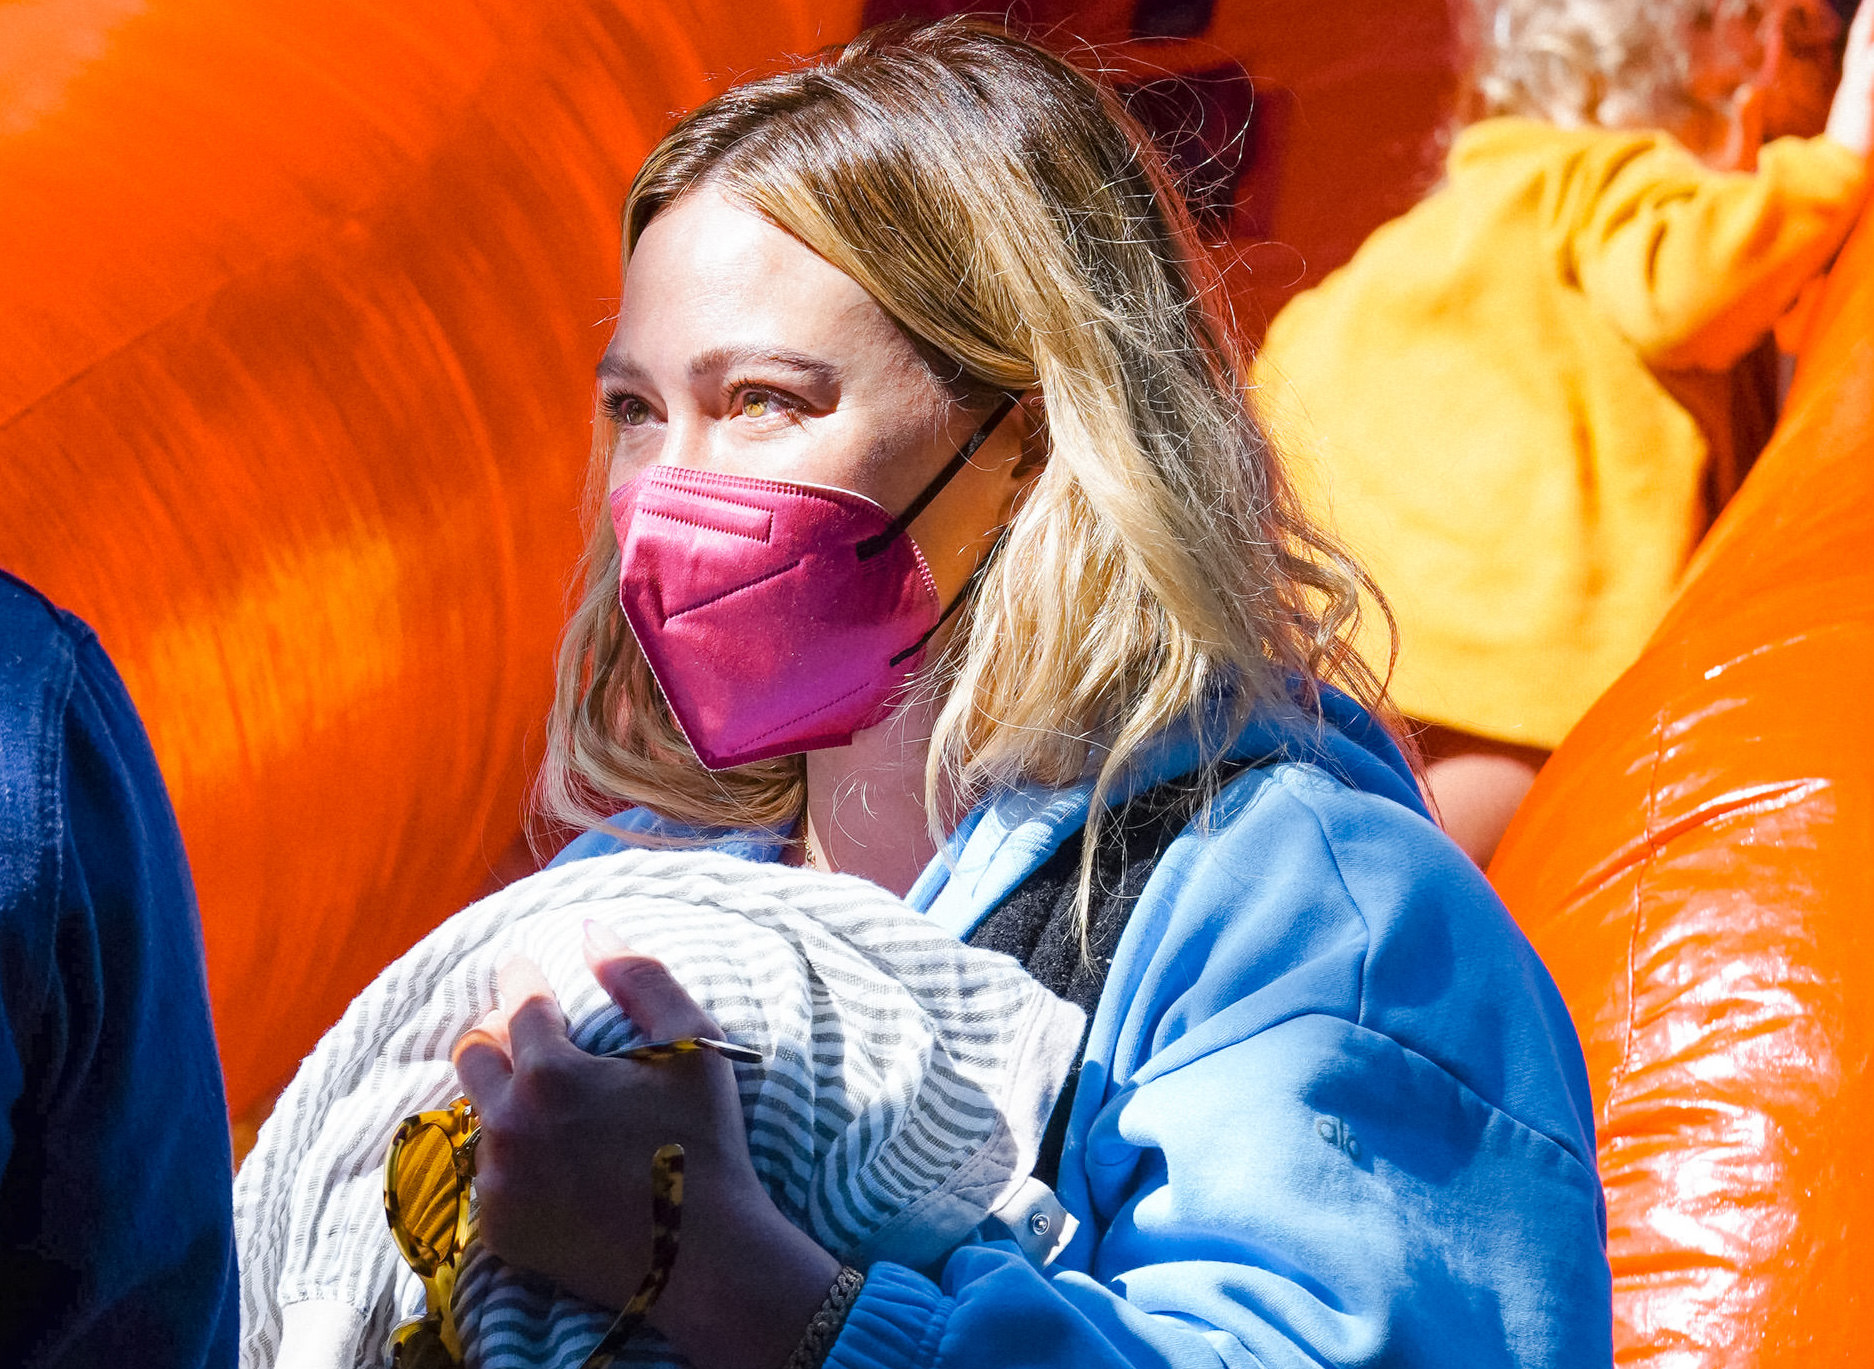 Hilary Duff and other celebs are obsessed with these pretty FDA-authorized KN95 masks